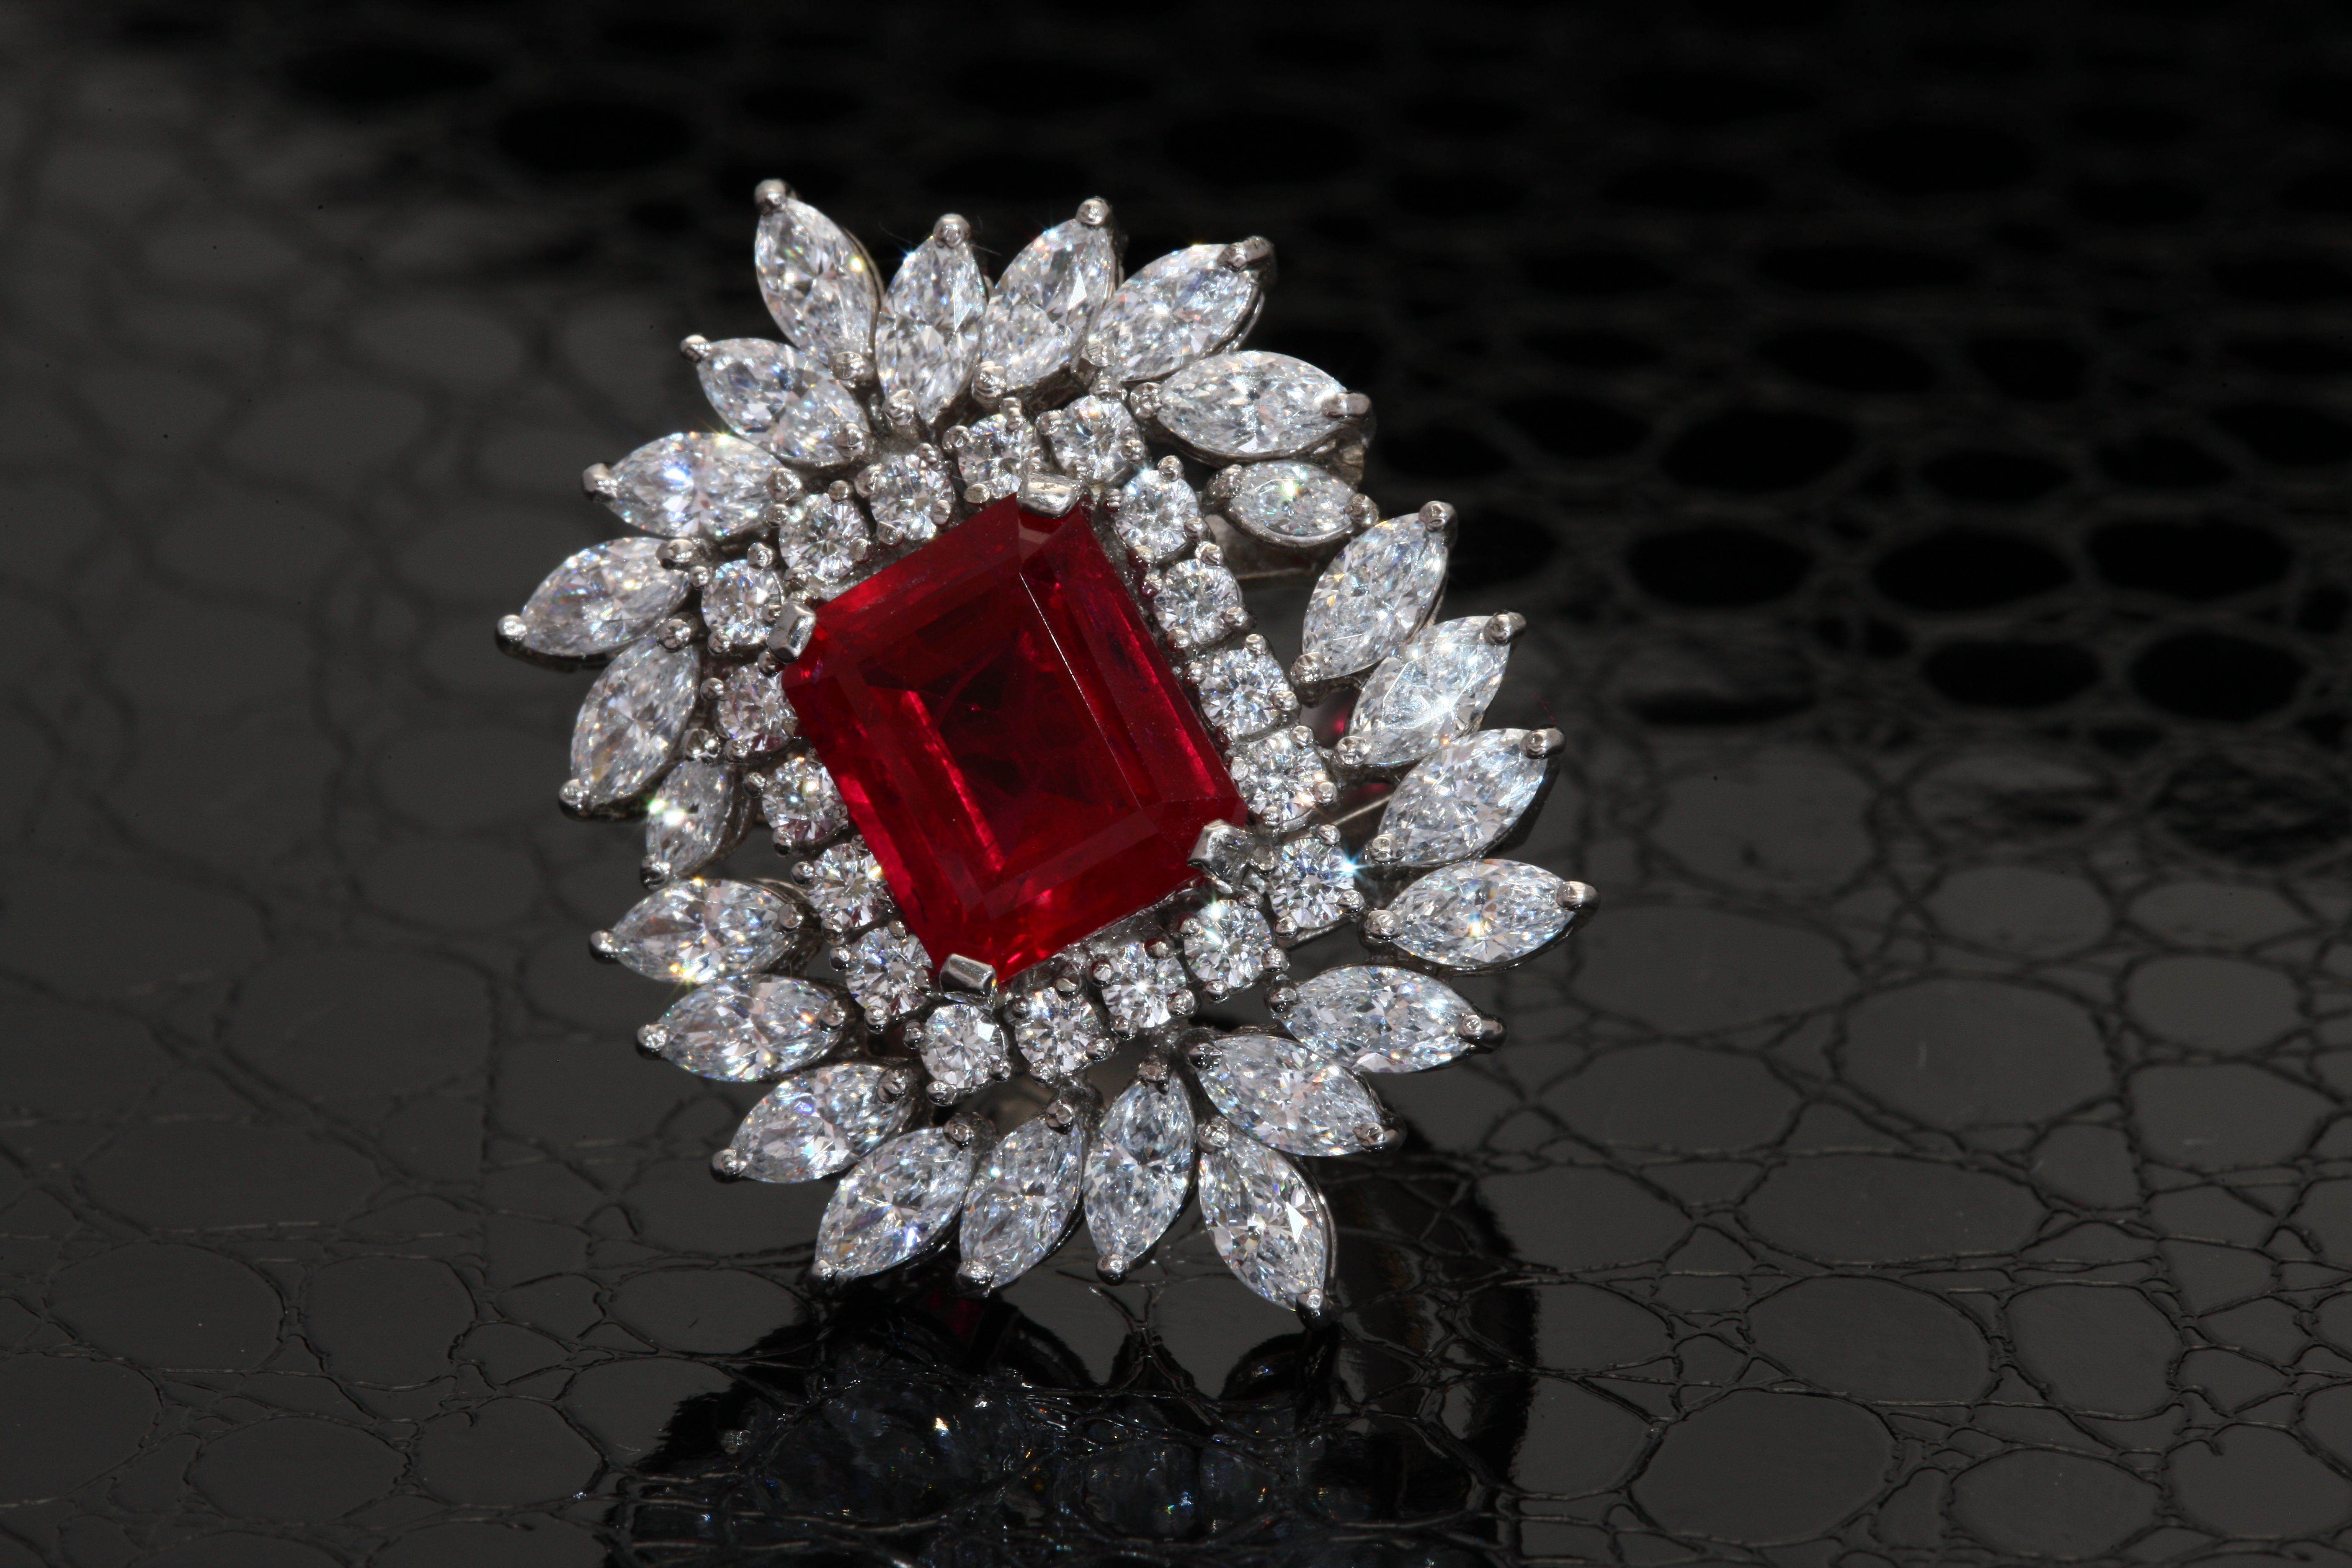 This #beautiful #DiosabyDarshanDave #cocktail #ring will make you feel like a princess! It presents a large, rectangular red stylized stone which plays with the light beautifully. The #SterlingSilver shank is adorned with brilliant cut and marquise-shaped #SwarovskiZirconia for a refined look. #makeeverydaybrilliant  #jewellery  #finejewellery #traveljewellery  #weddings #fashionwear #preciousjewellery  #luxejewellery  #dailywear #workwear  #casualwear #destinationweddings  #bridalwear